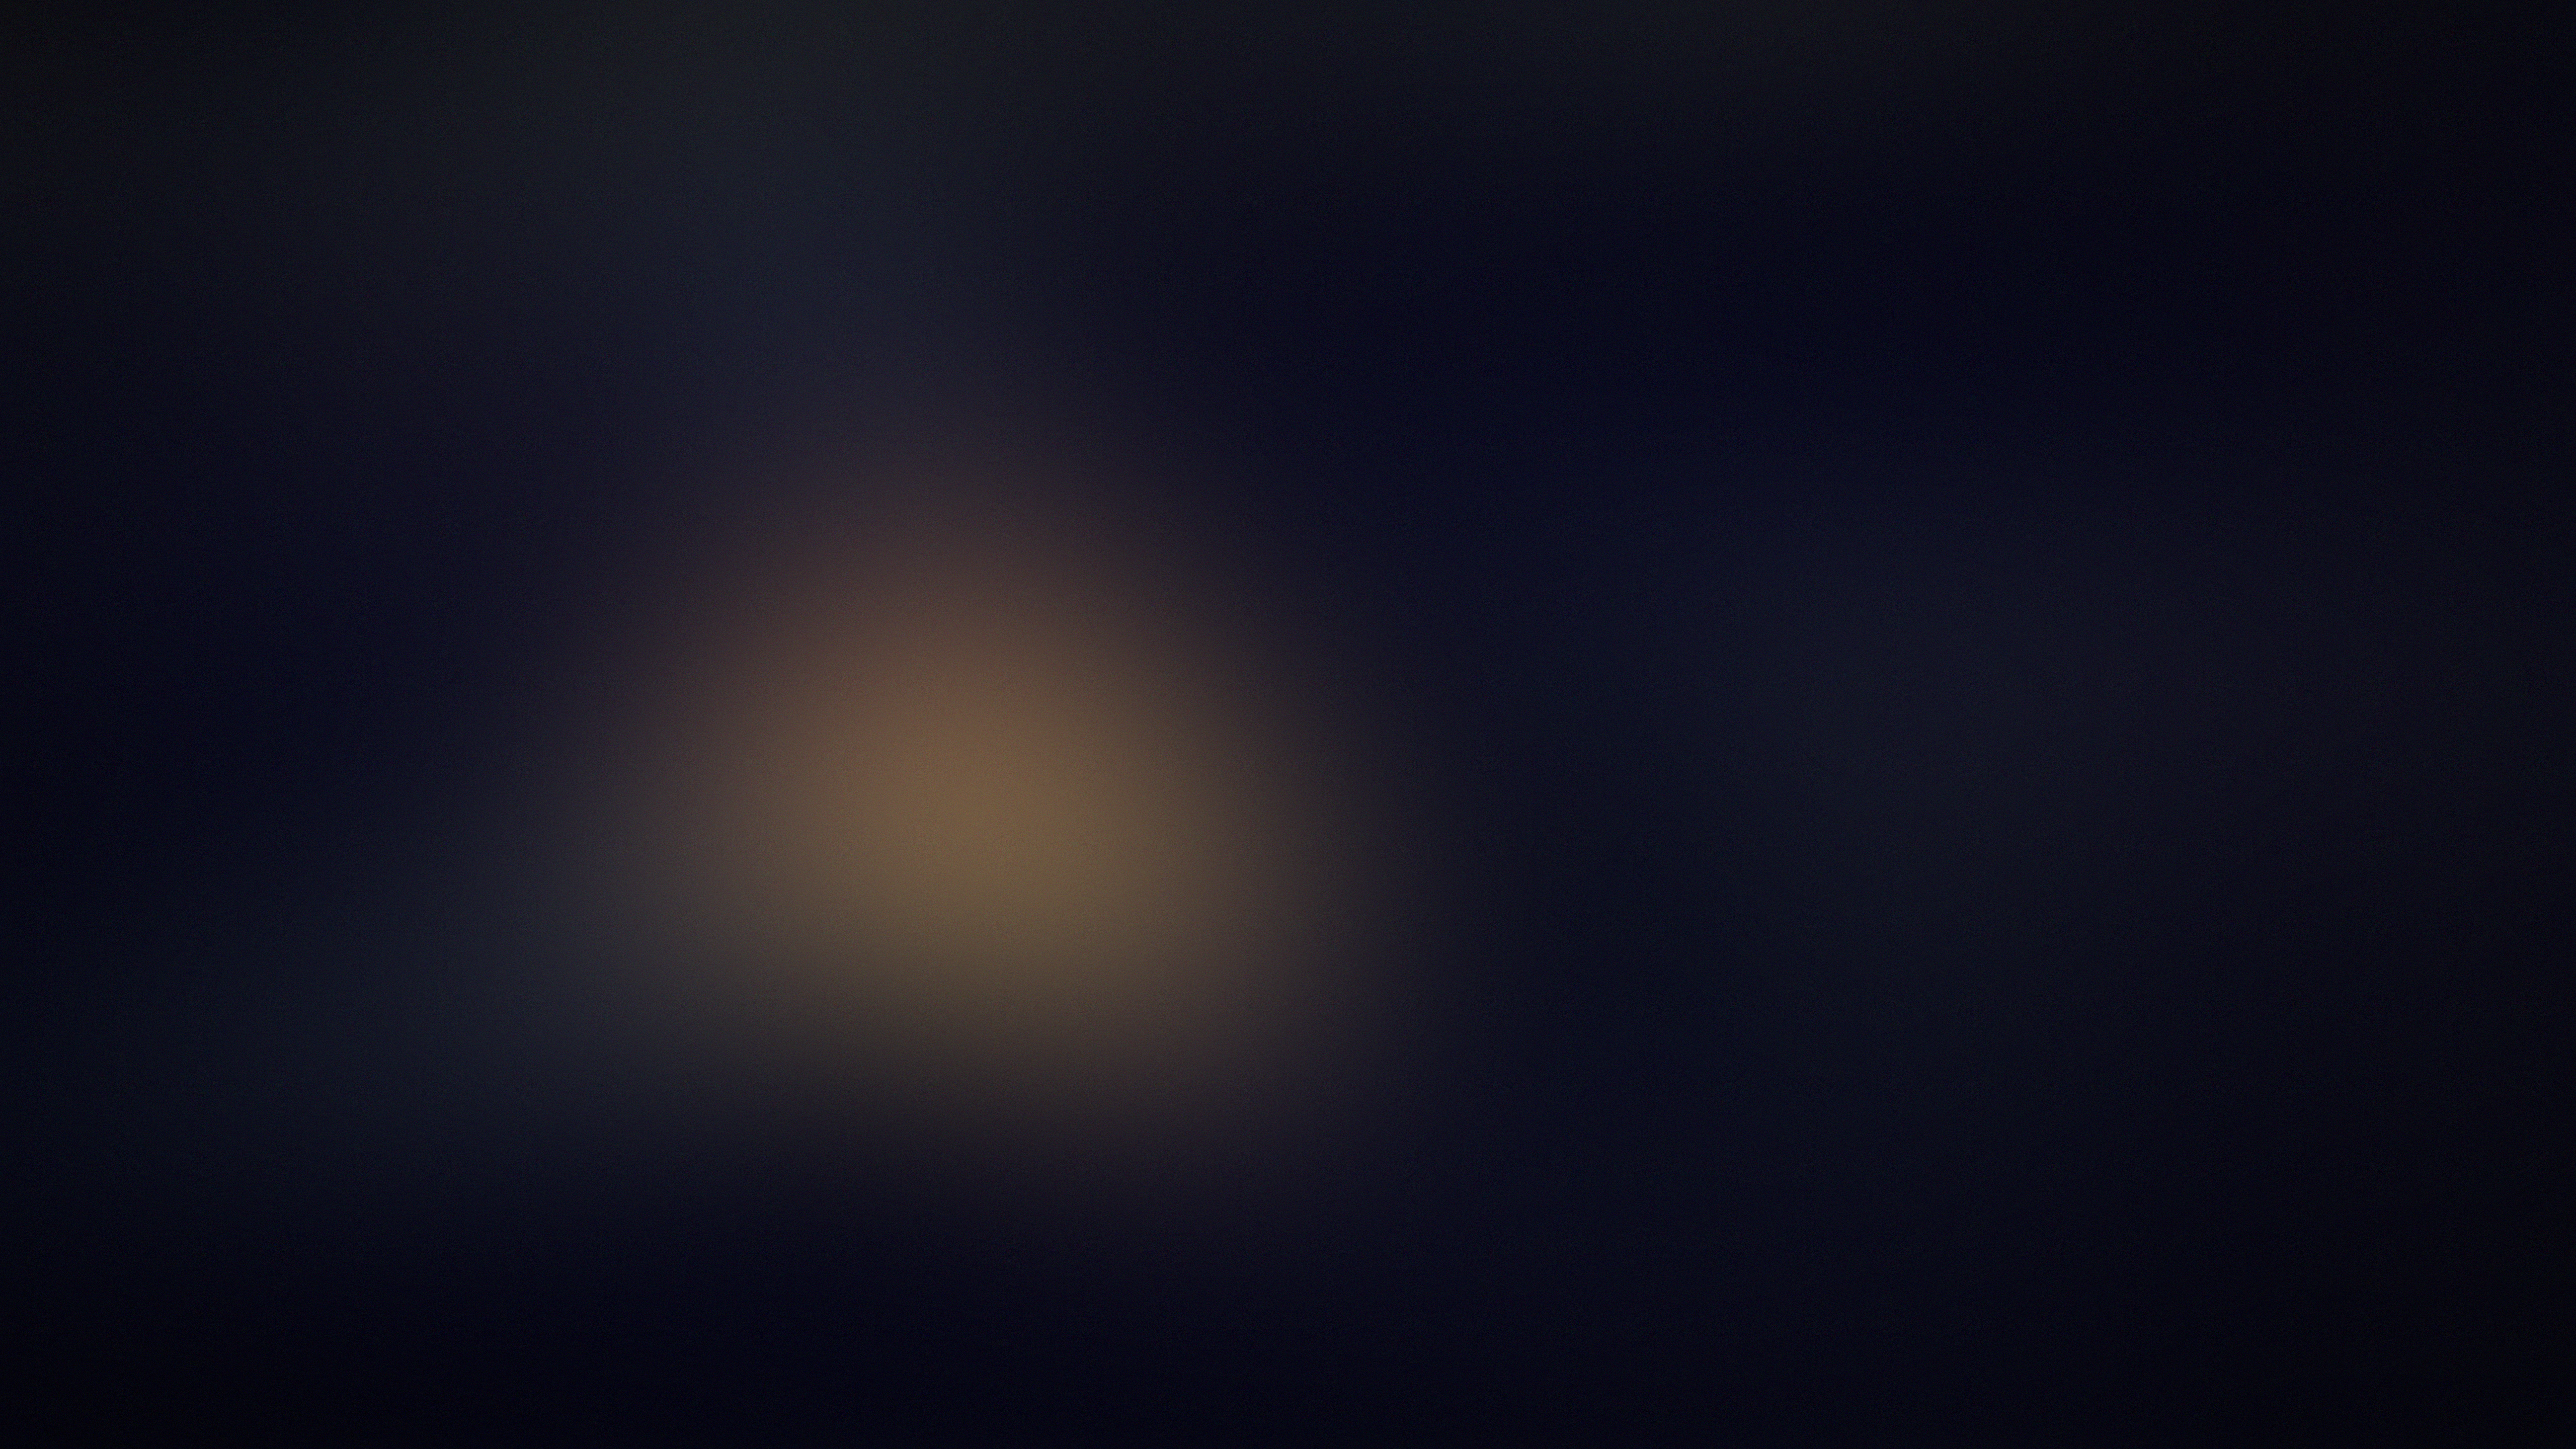 Dark Abstract Blur 4k, HD Abstract, 4k Wallpapers, Images ...